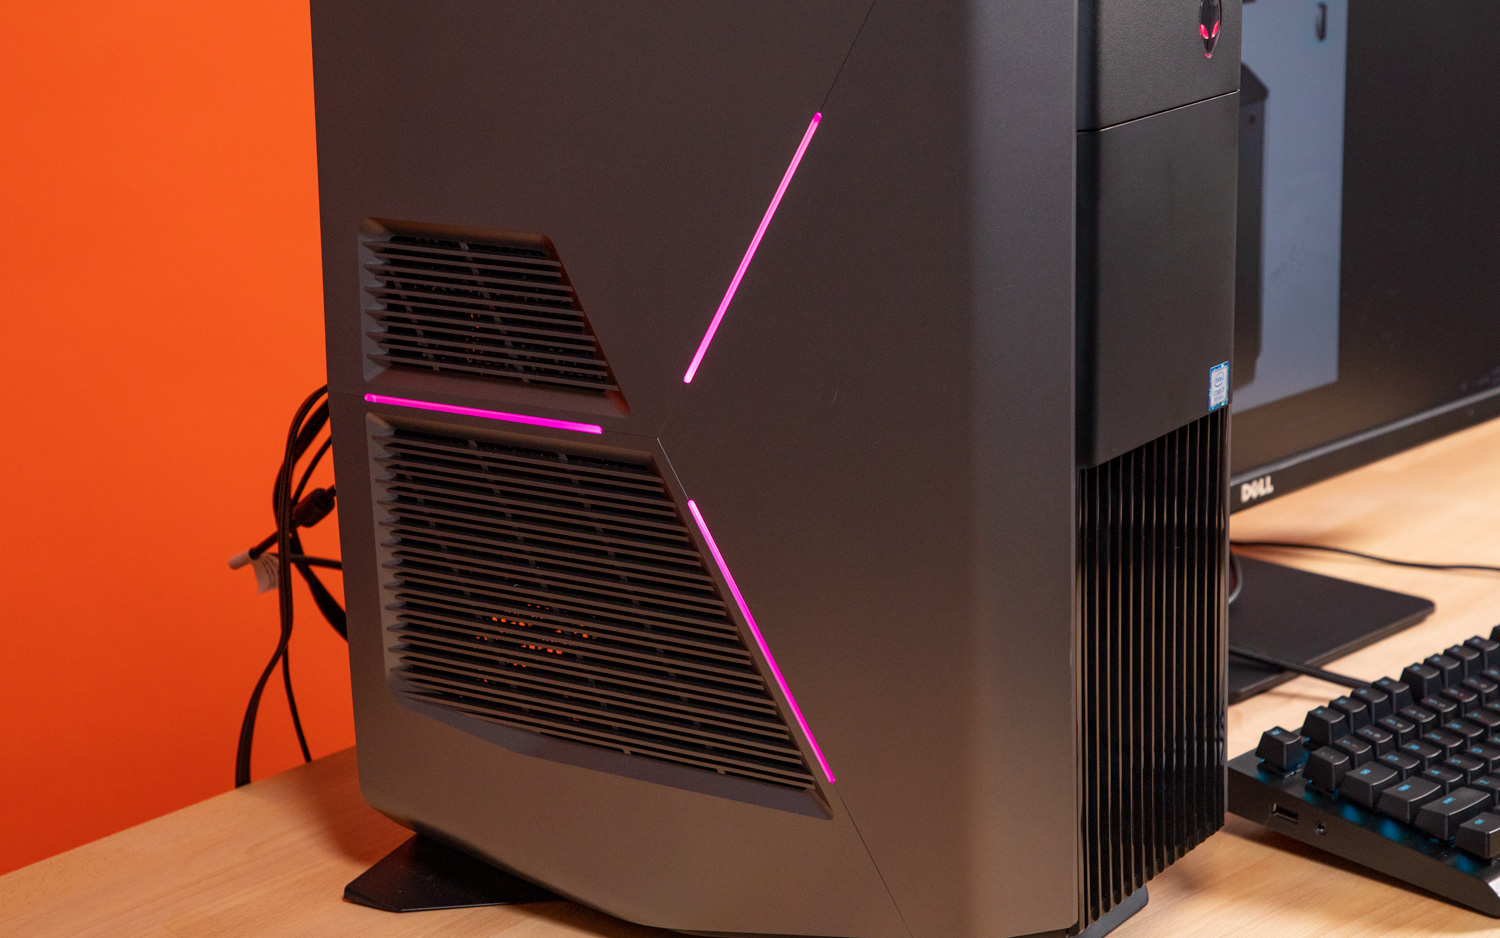 Your average computer in 2019 Cool Gaming computer Pc